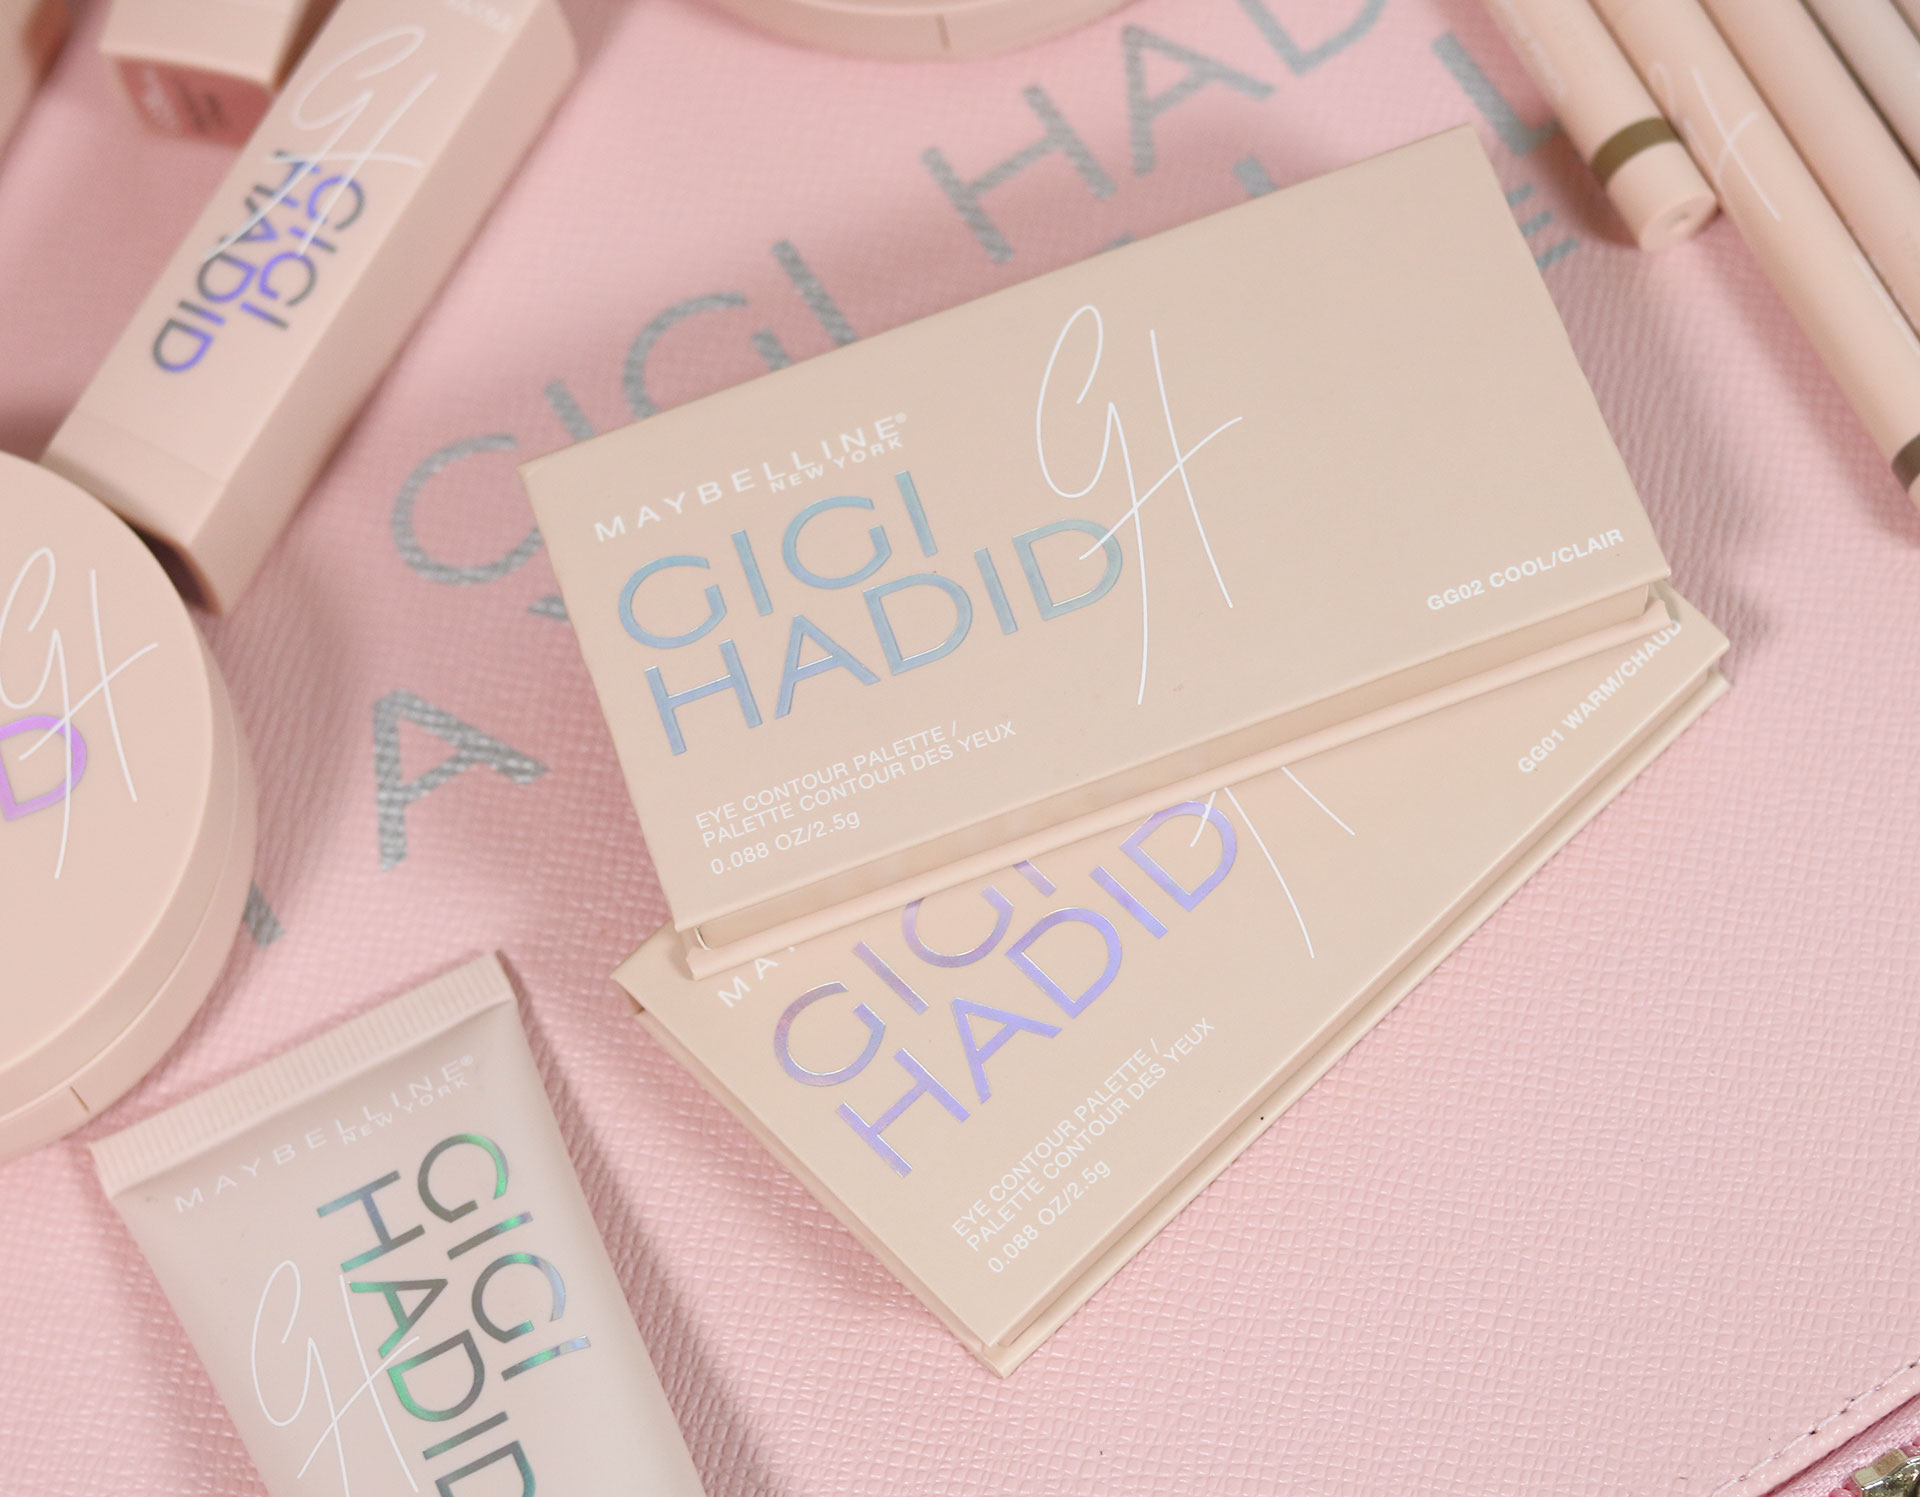 25 Gigi Hadid Maybelline Collection Review Swatches Photos - Gen-zel She Sings Beauty